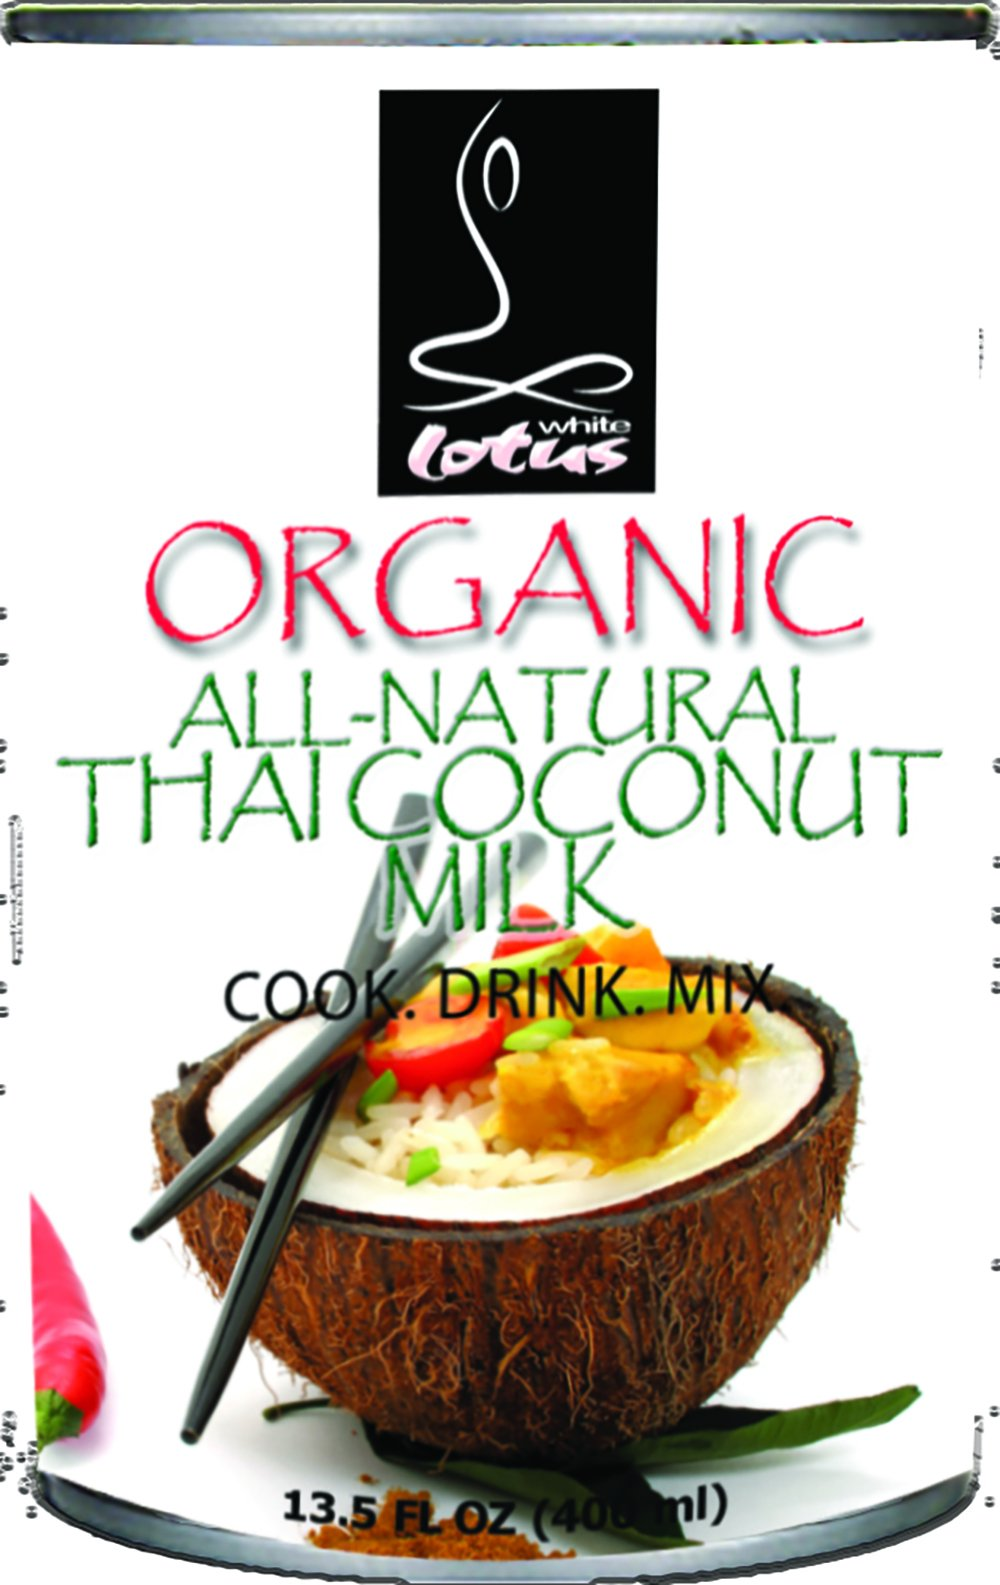 White Lotus Organic All-Natural Thai Coconut Milk, 13.5 Fluid Ounce (Pack of 24)